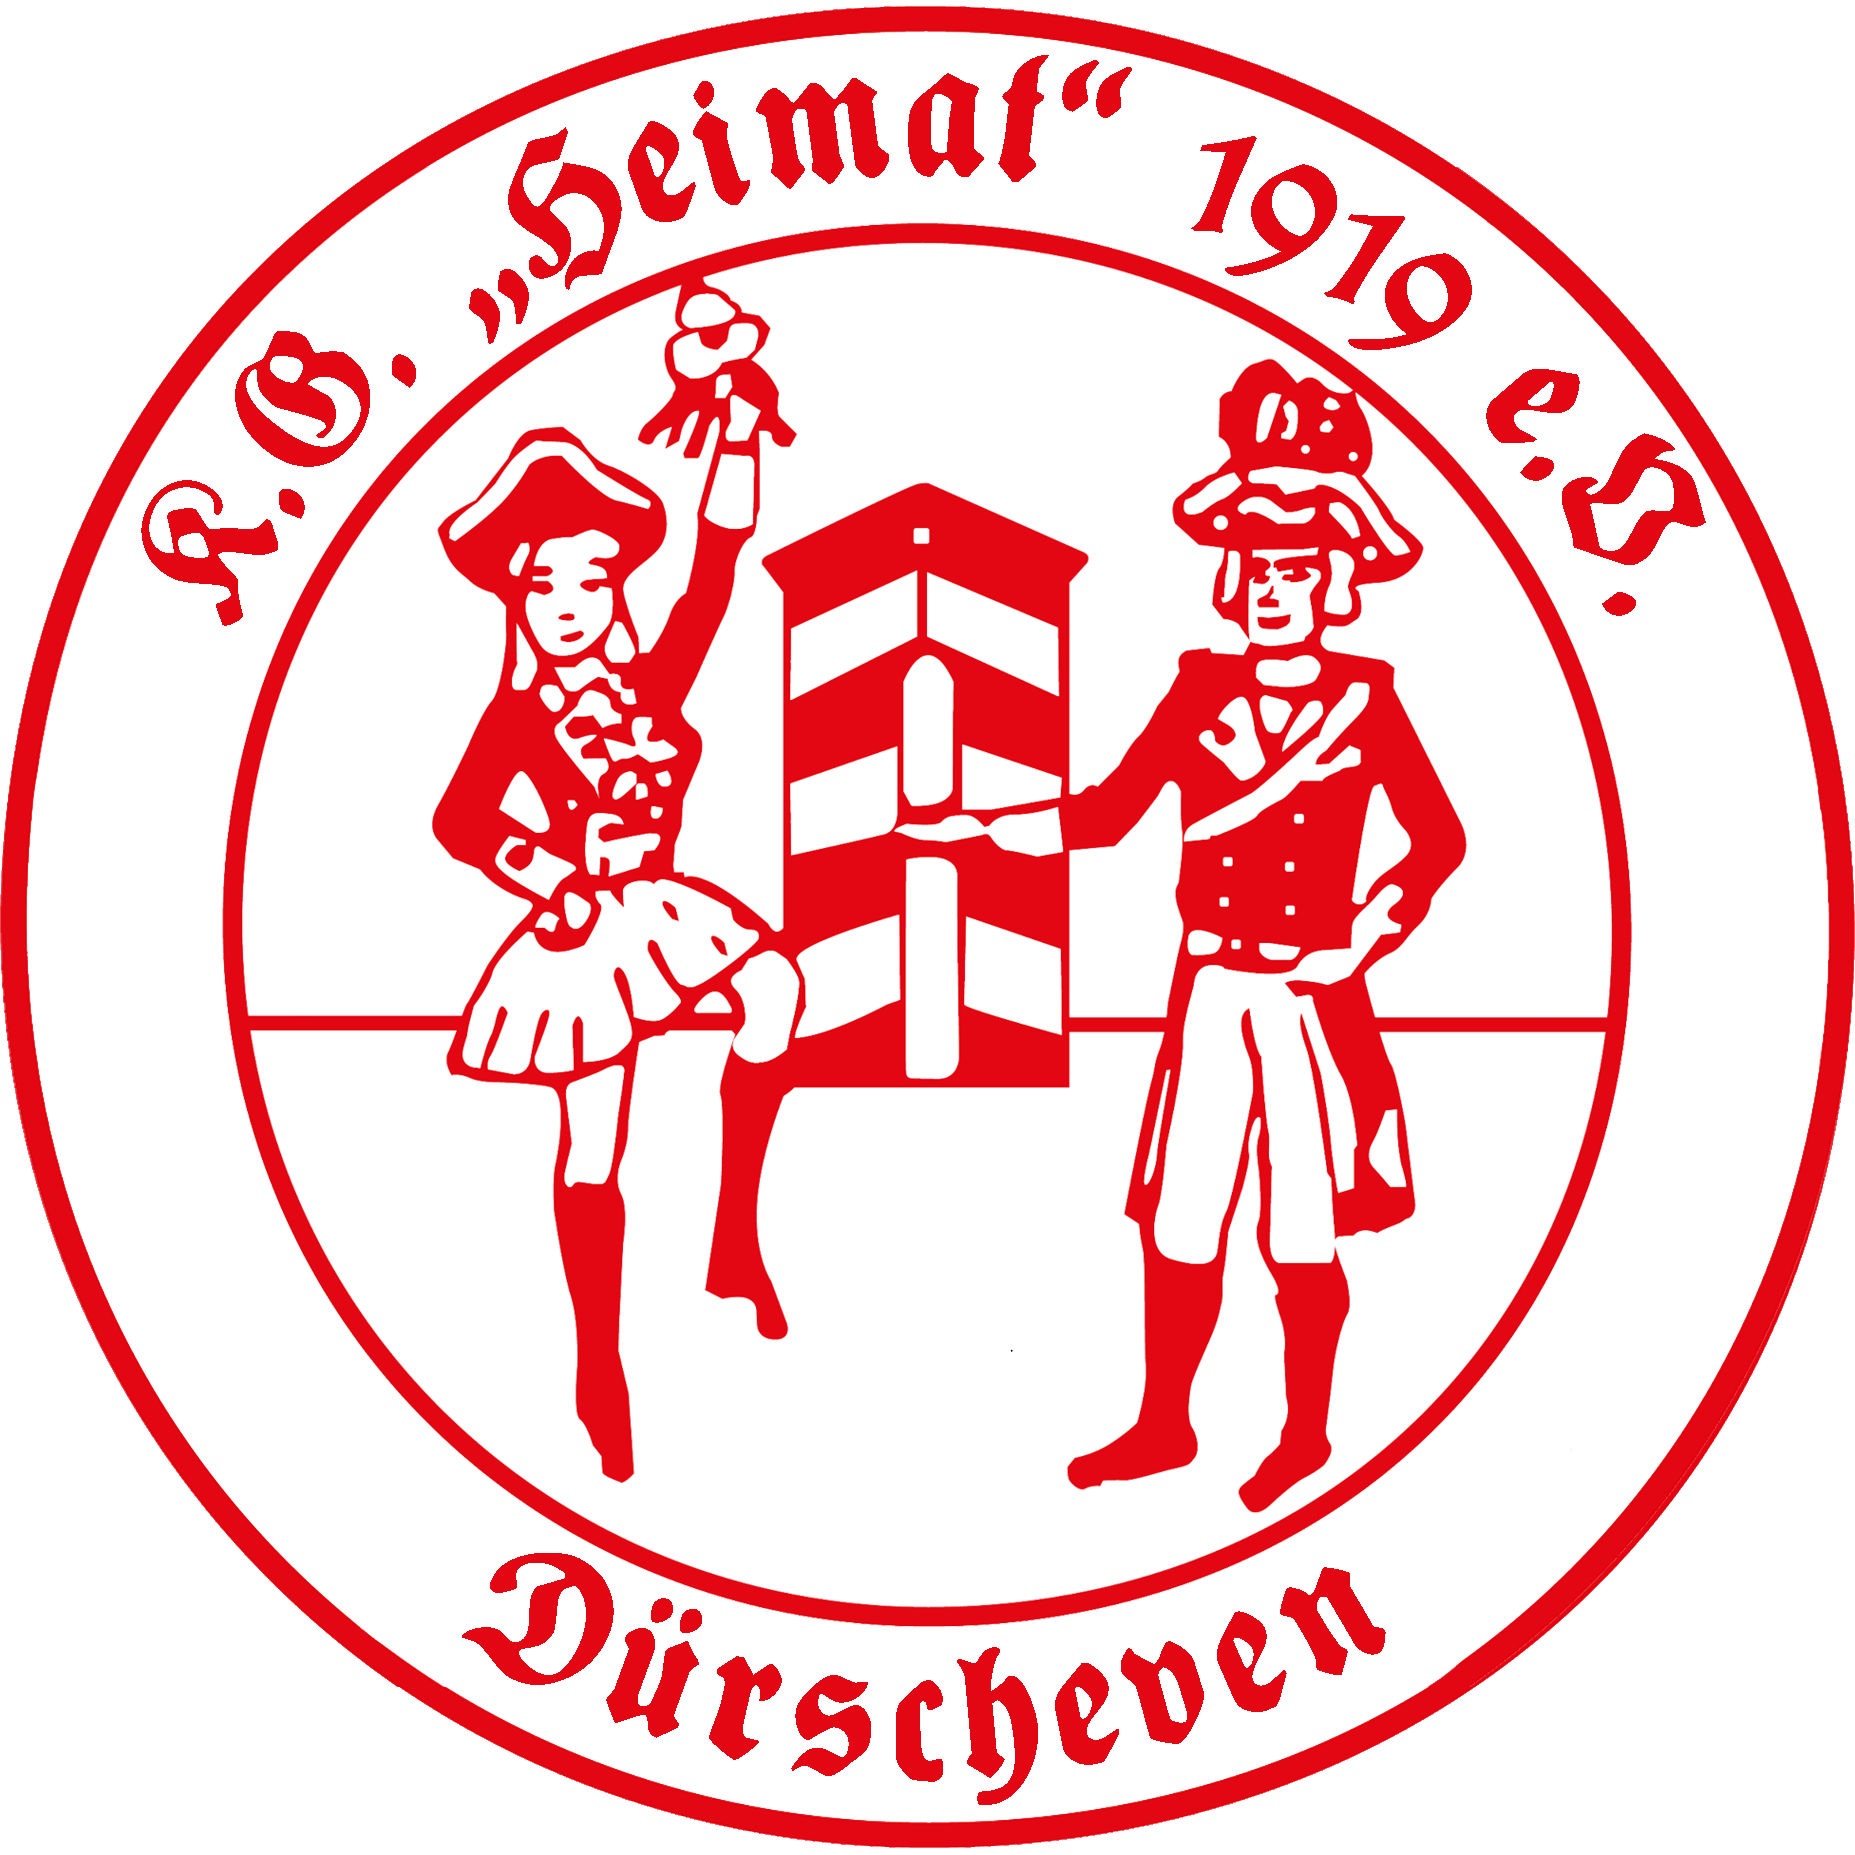 Emblem K.G. Heimat mit Text Version a